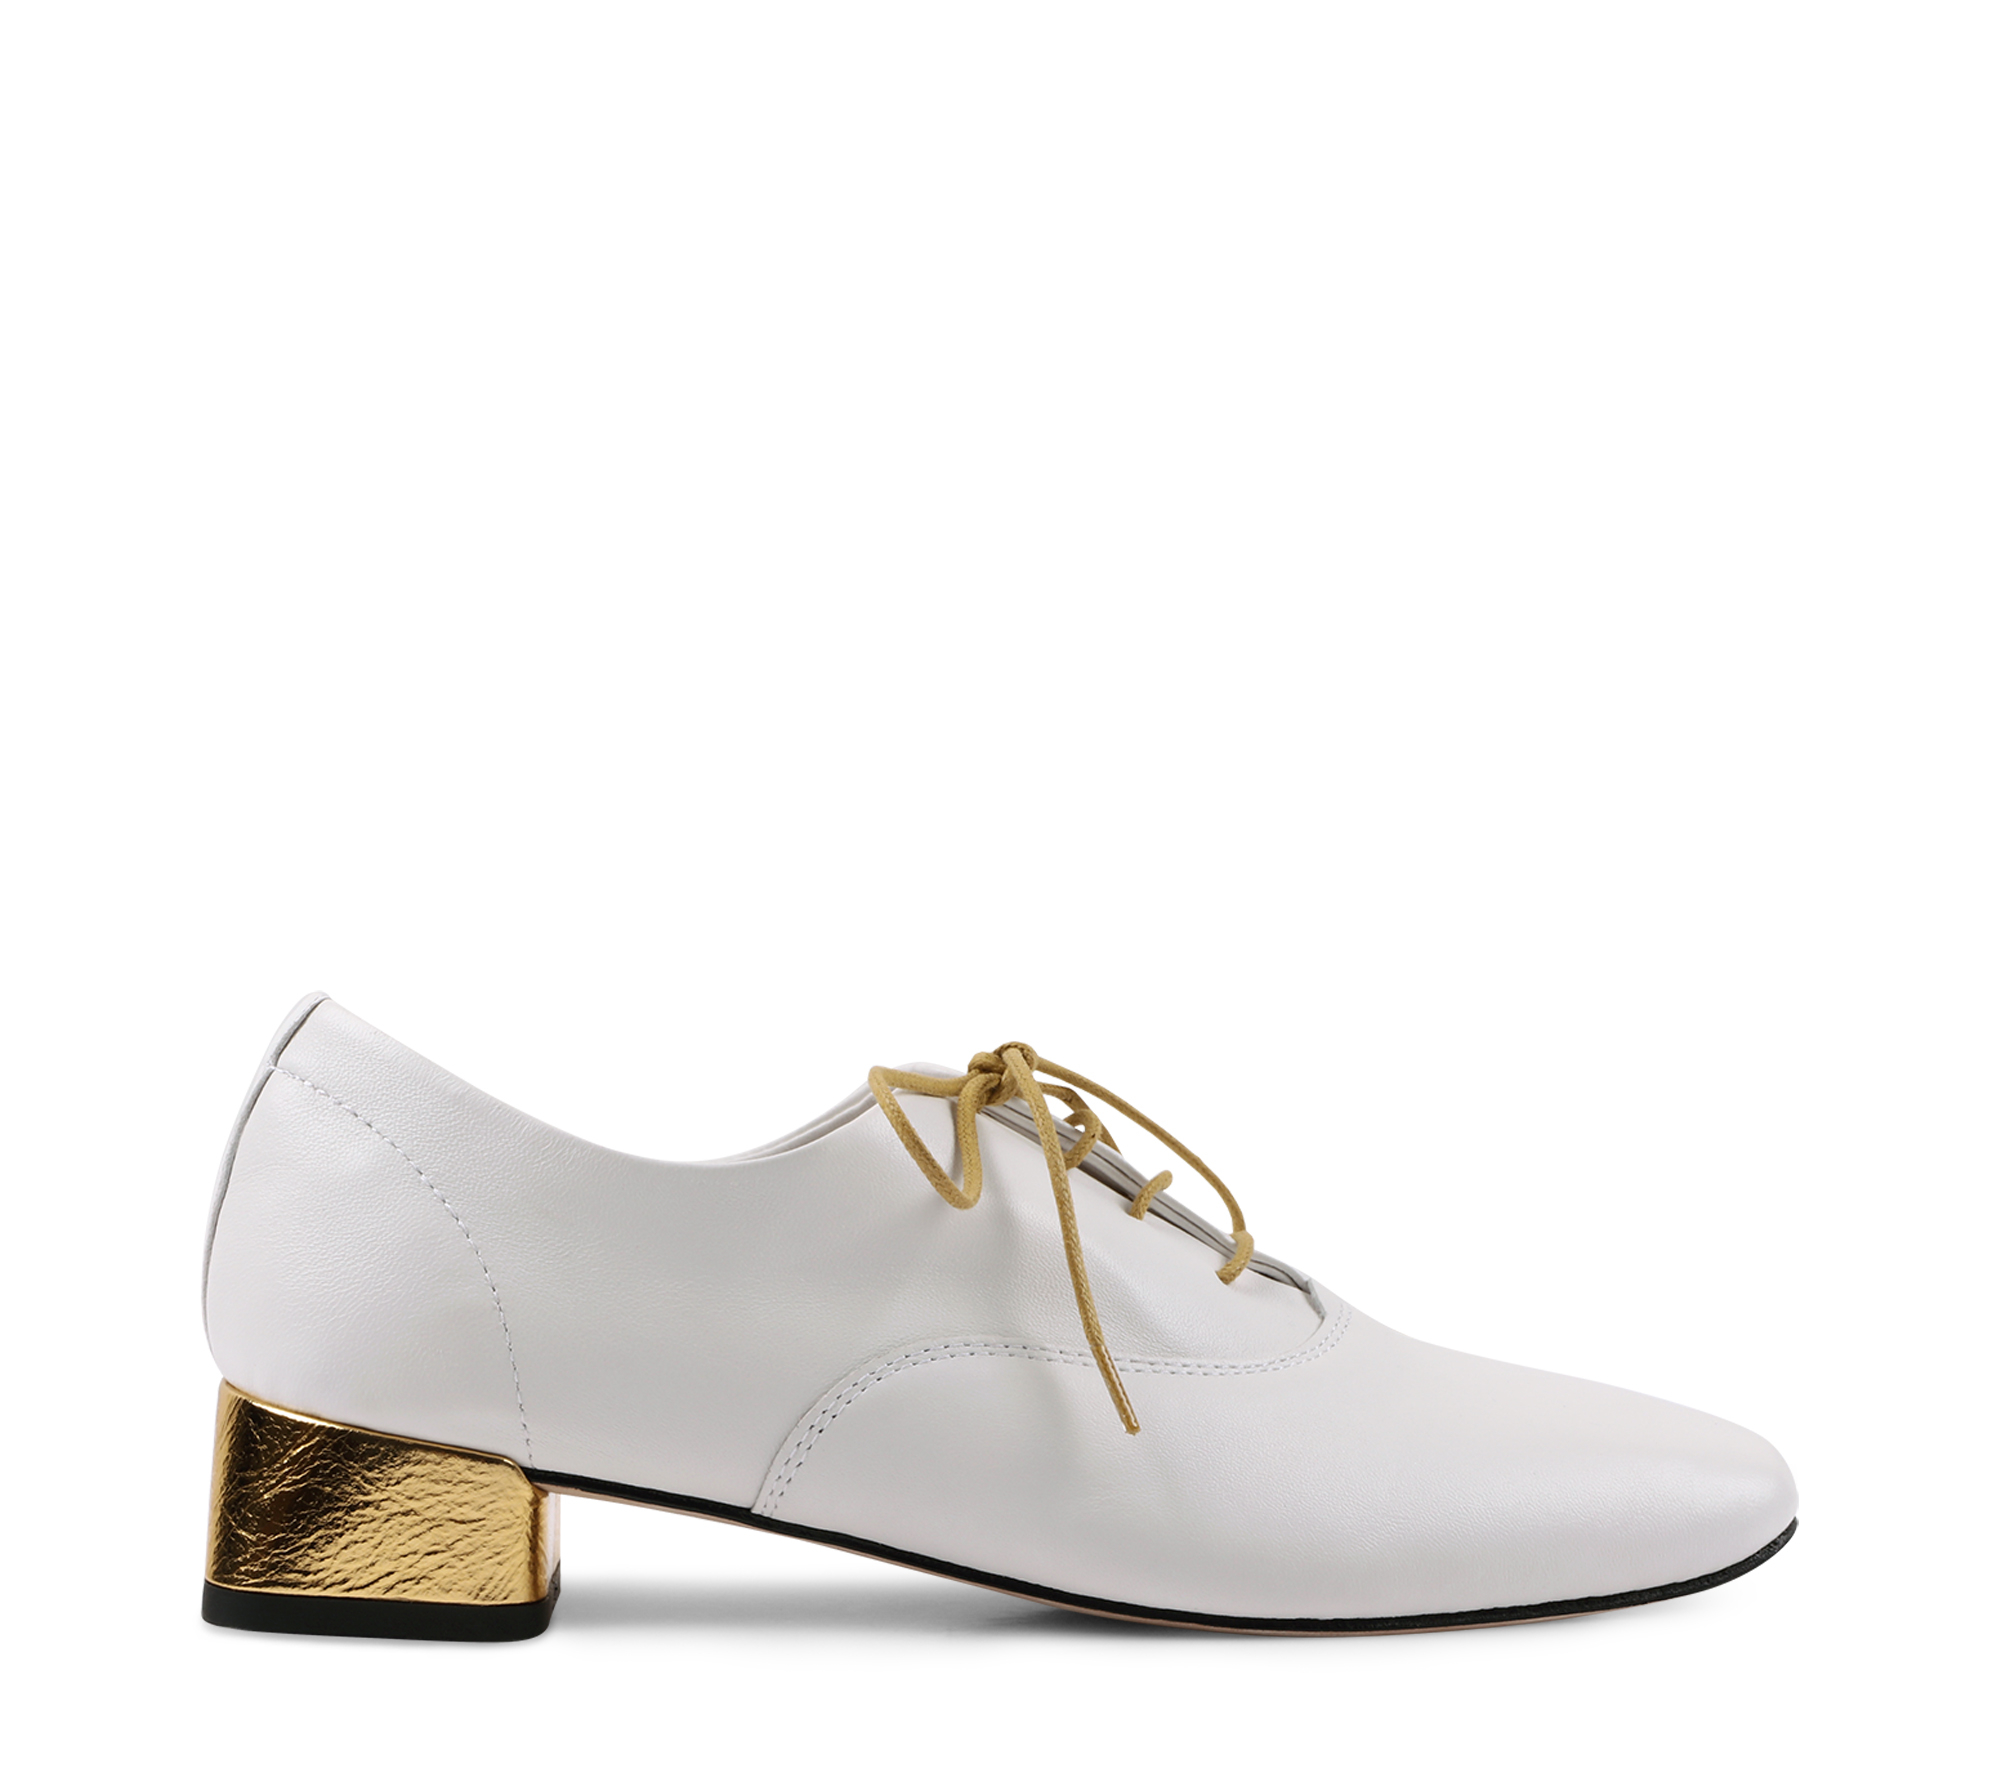 Mark Oxford Shoes by Repetto Paris